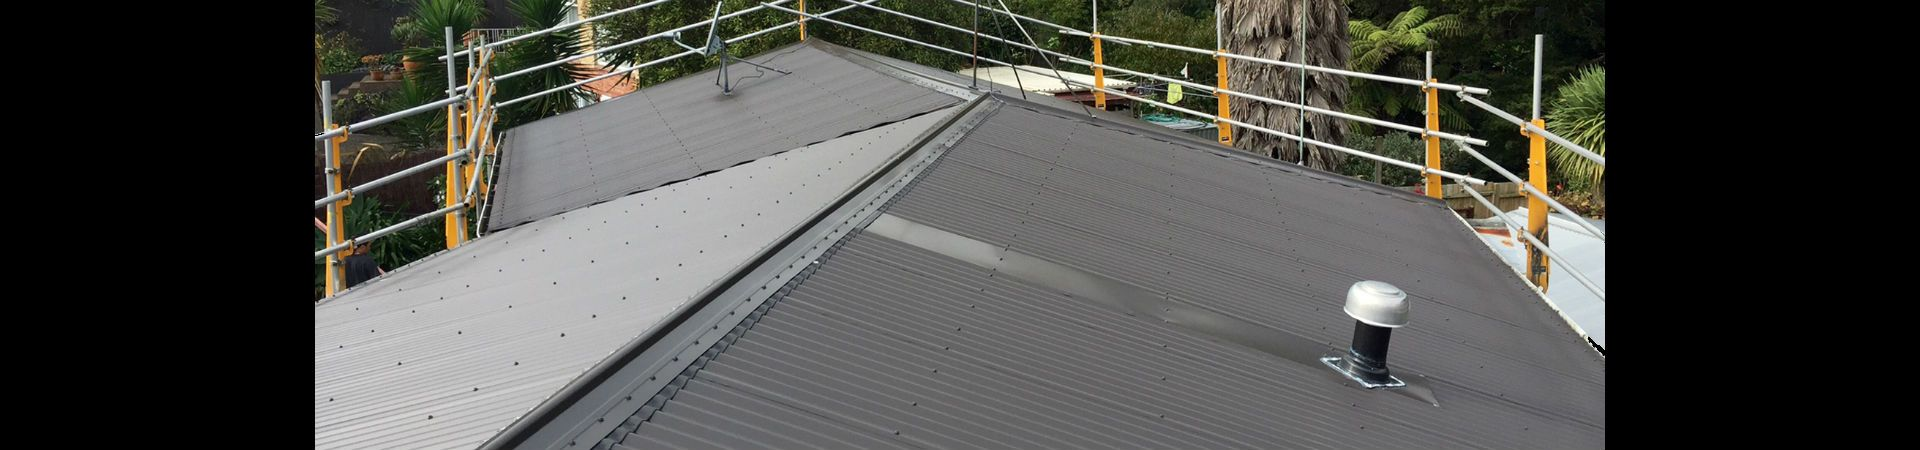 Certified Roofing Specialist West Auckland Roof Repairs